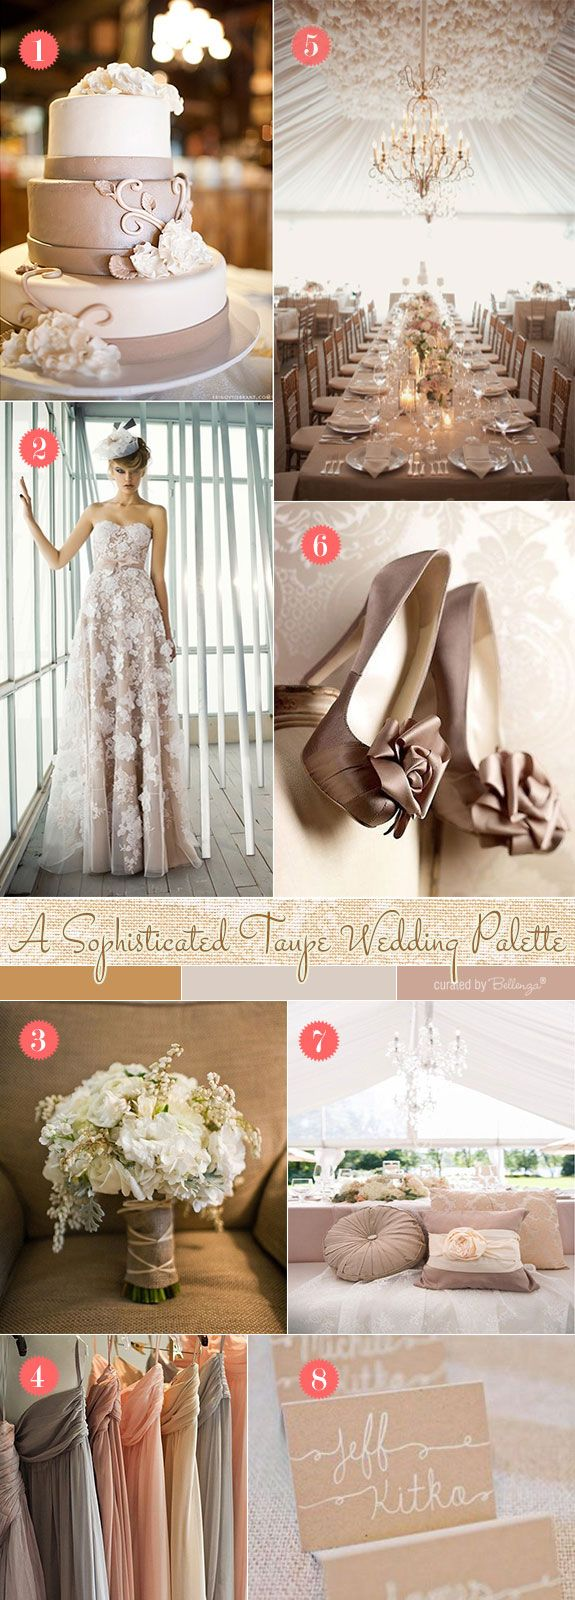 Taupe wedding in vintage glam style, perfect for fall.  #fallweddings #inspirationboards #glamweddings